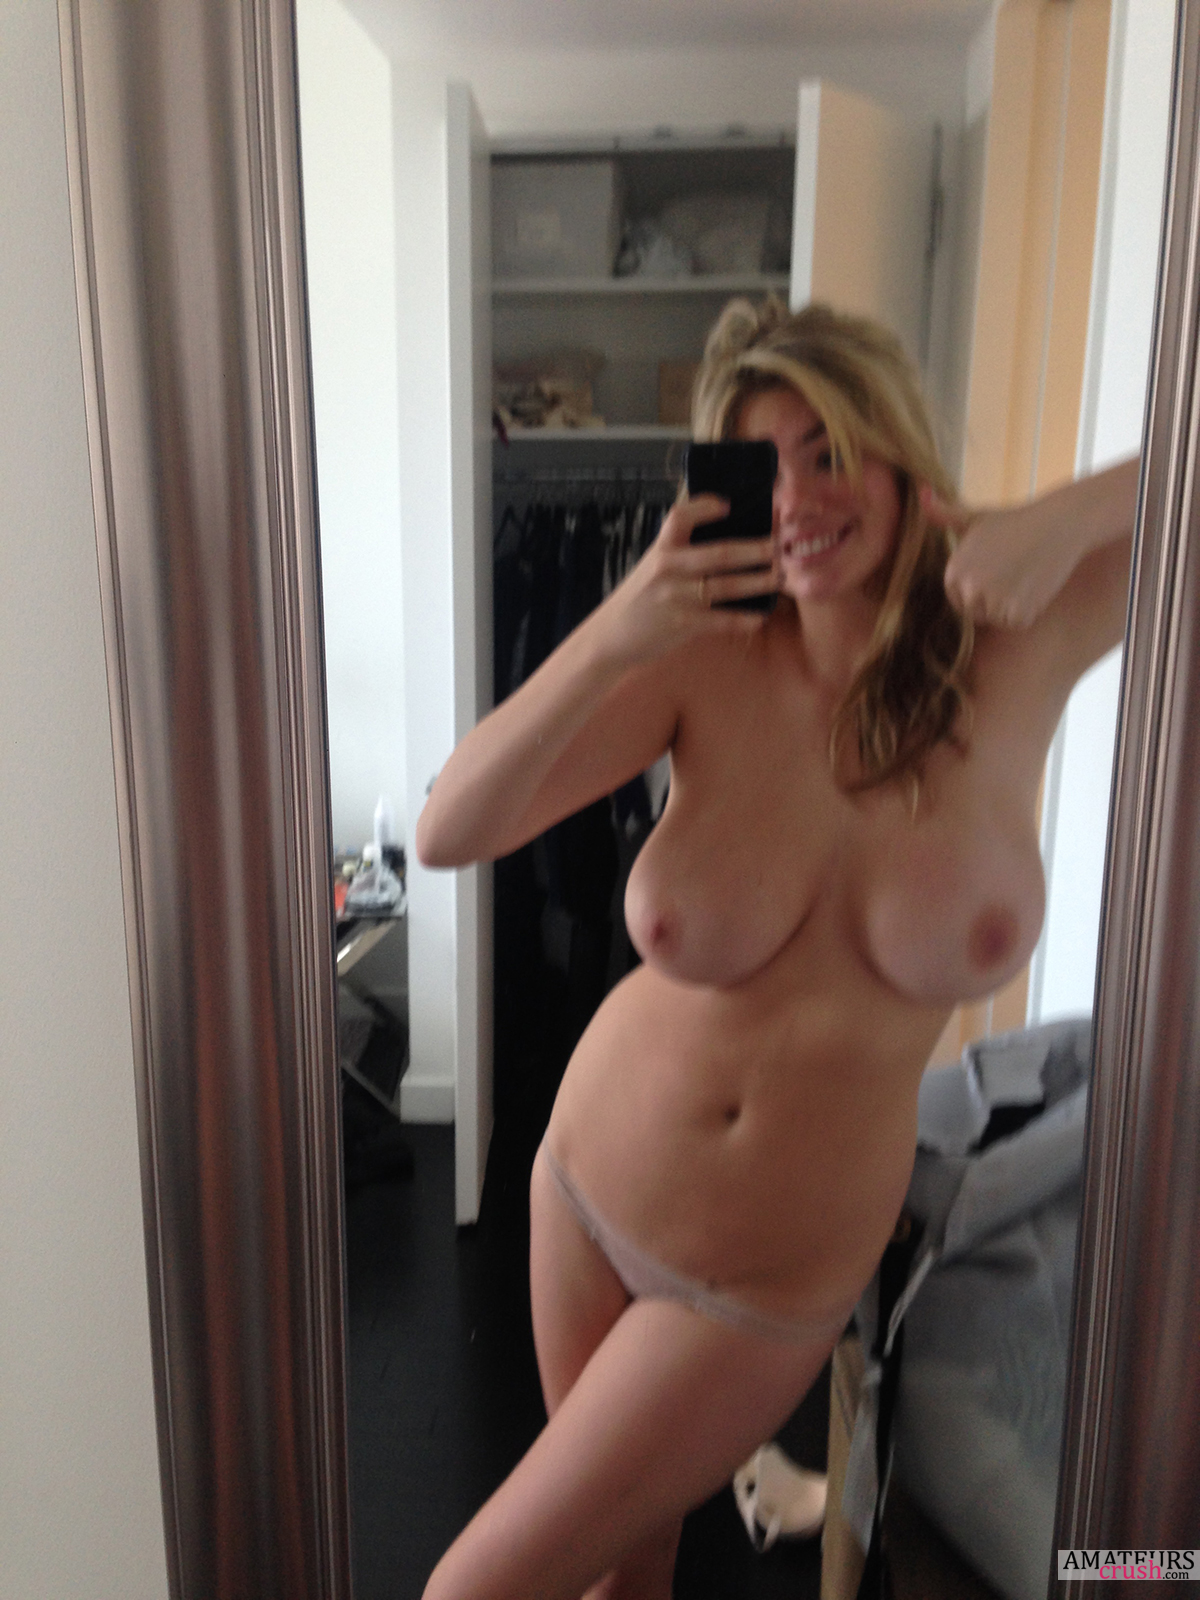 kate upton leaked pictures from the fappening - amateurscrush